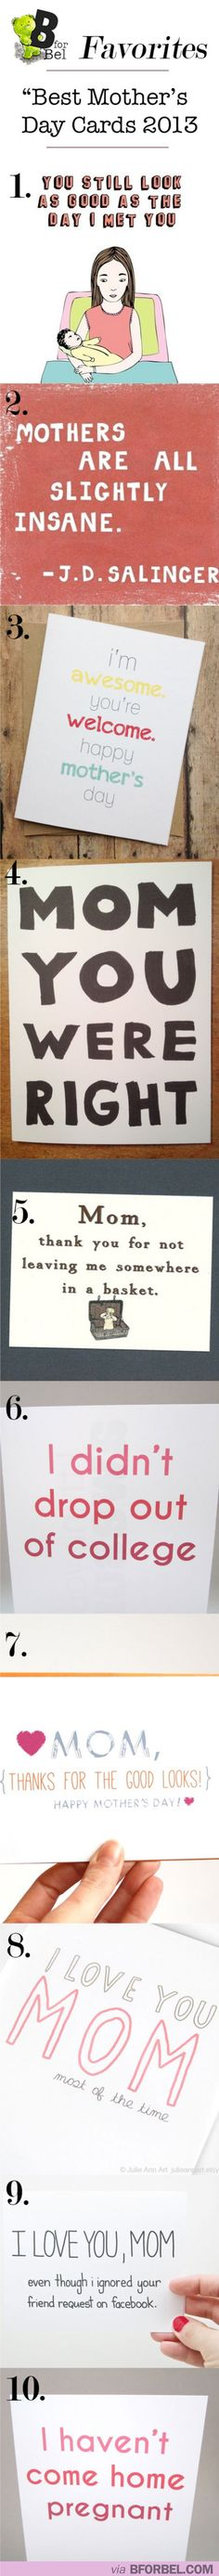 Best Mother's Day Cards